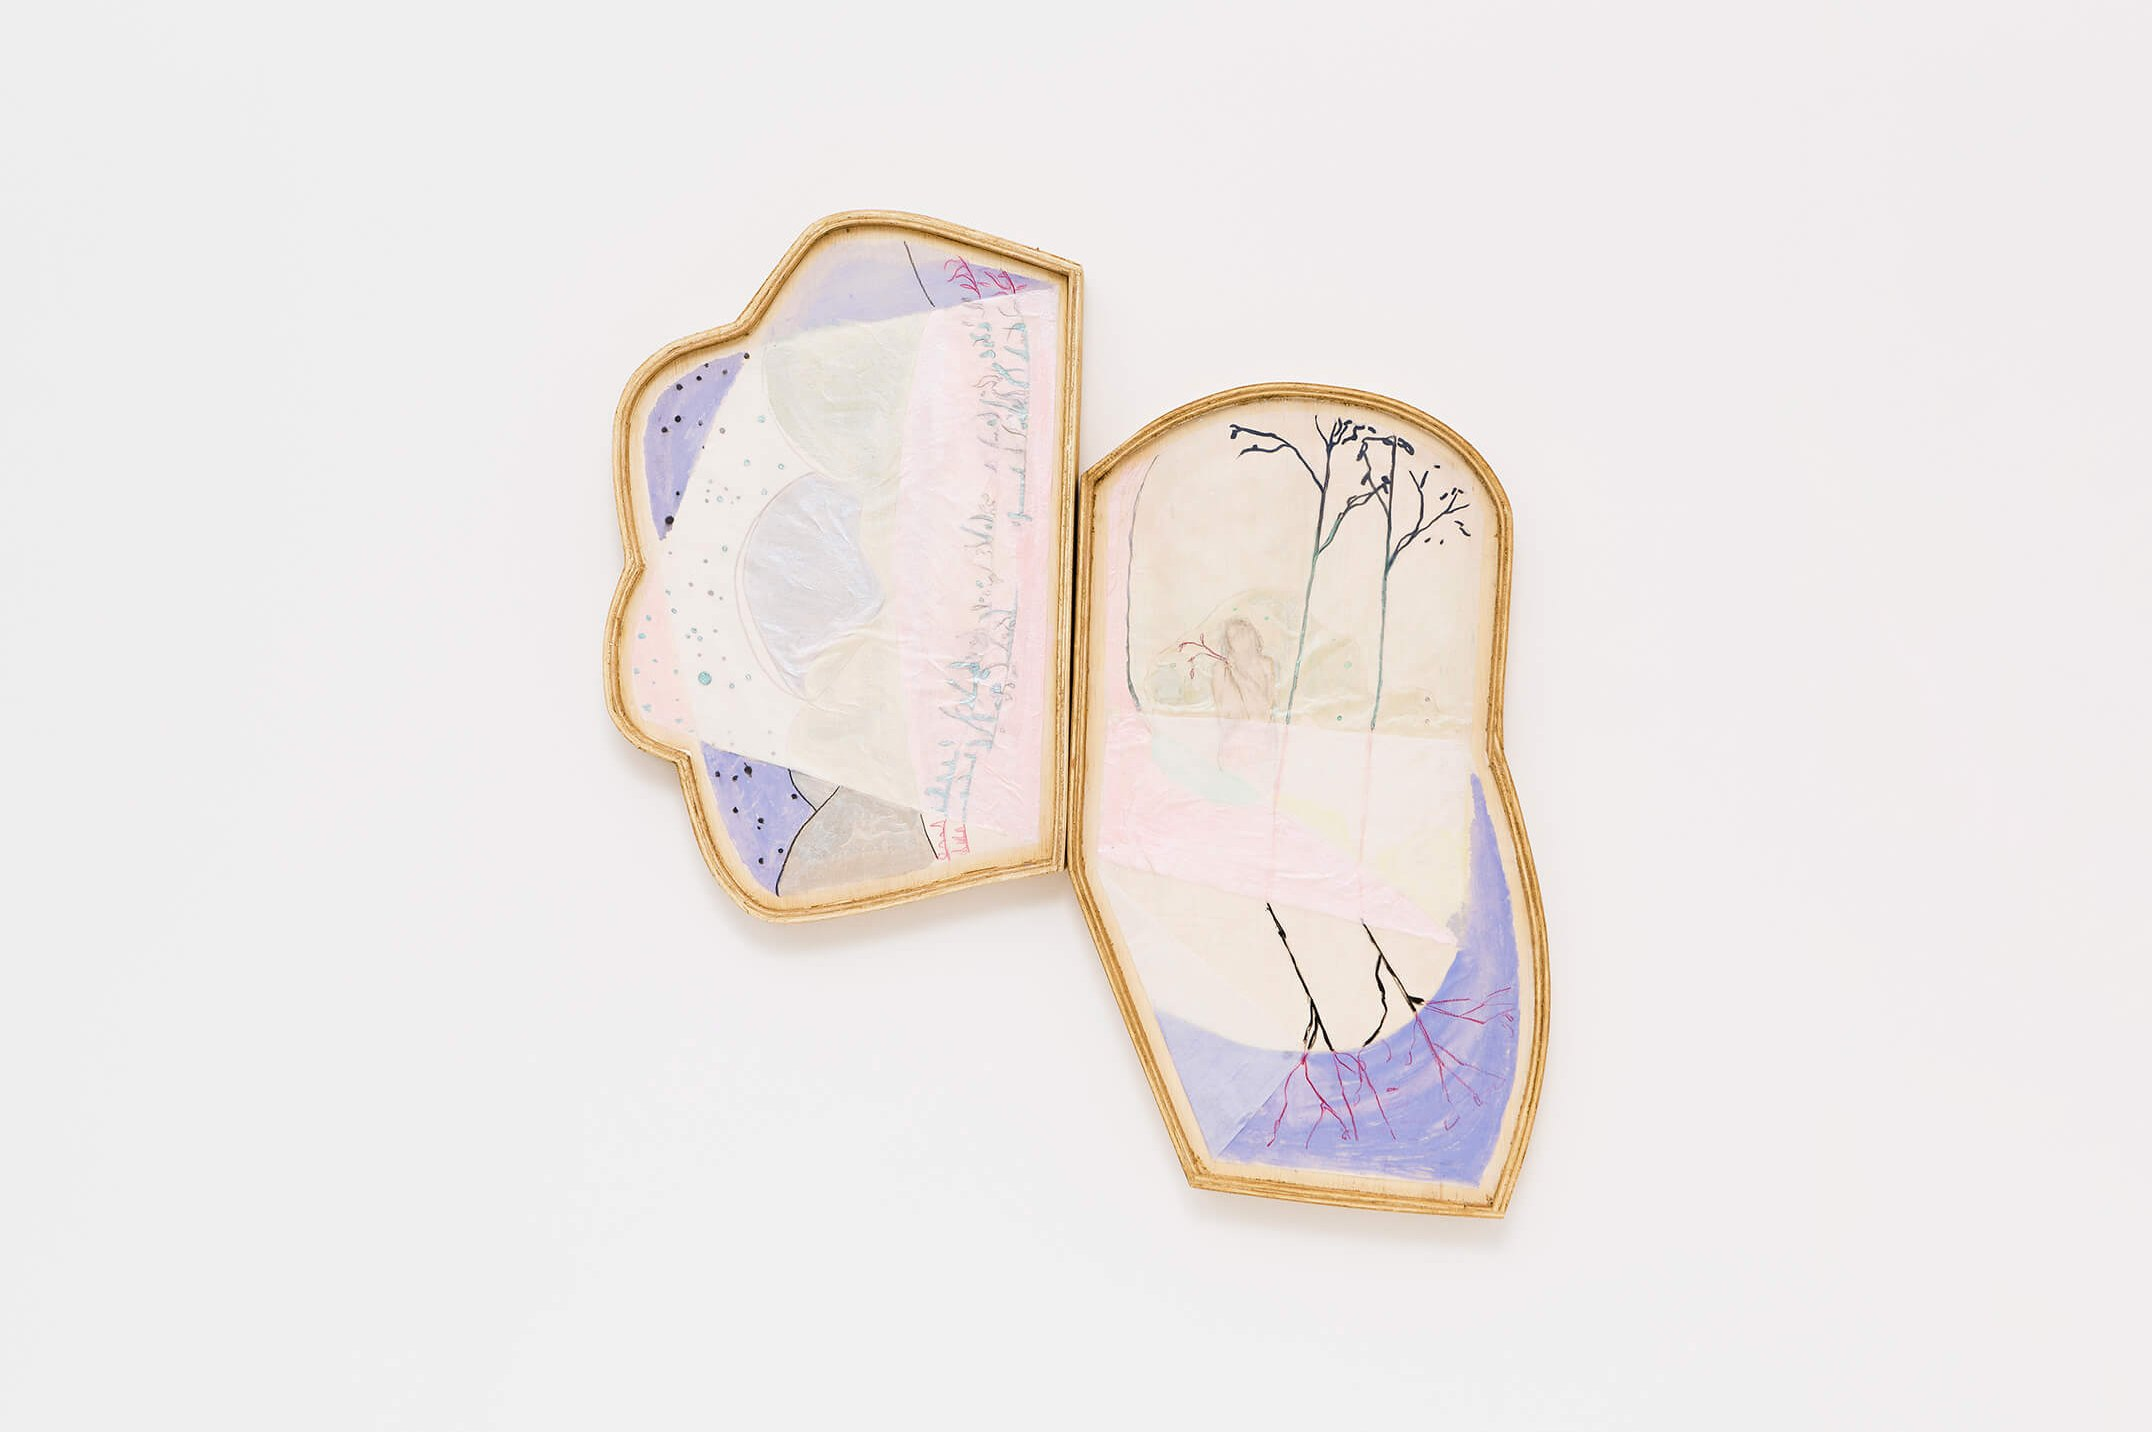 Marina Perez Simão,<em>untitled</em>, 2015,pencil, acrylic, watercolor, iridescent pigment on korean paper folded and assembled on wood, 61 × 67 × 4cm - Mendes Wood DM